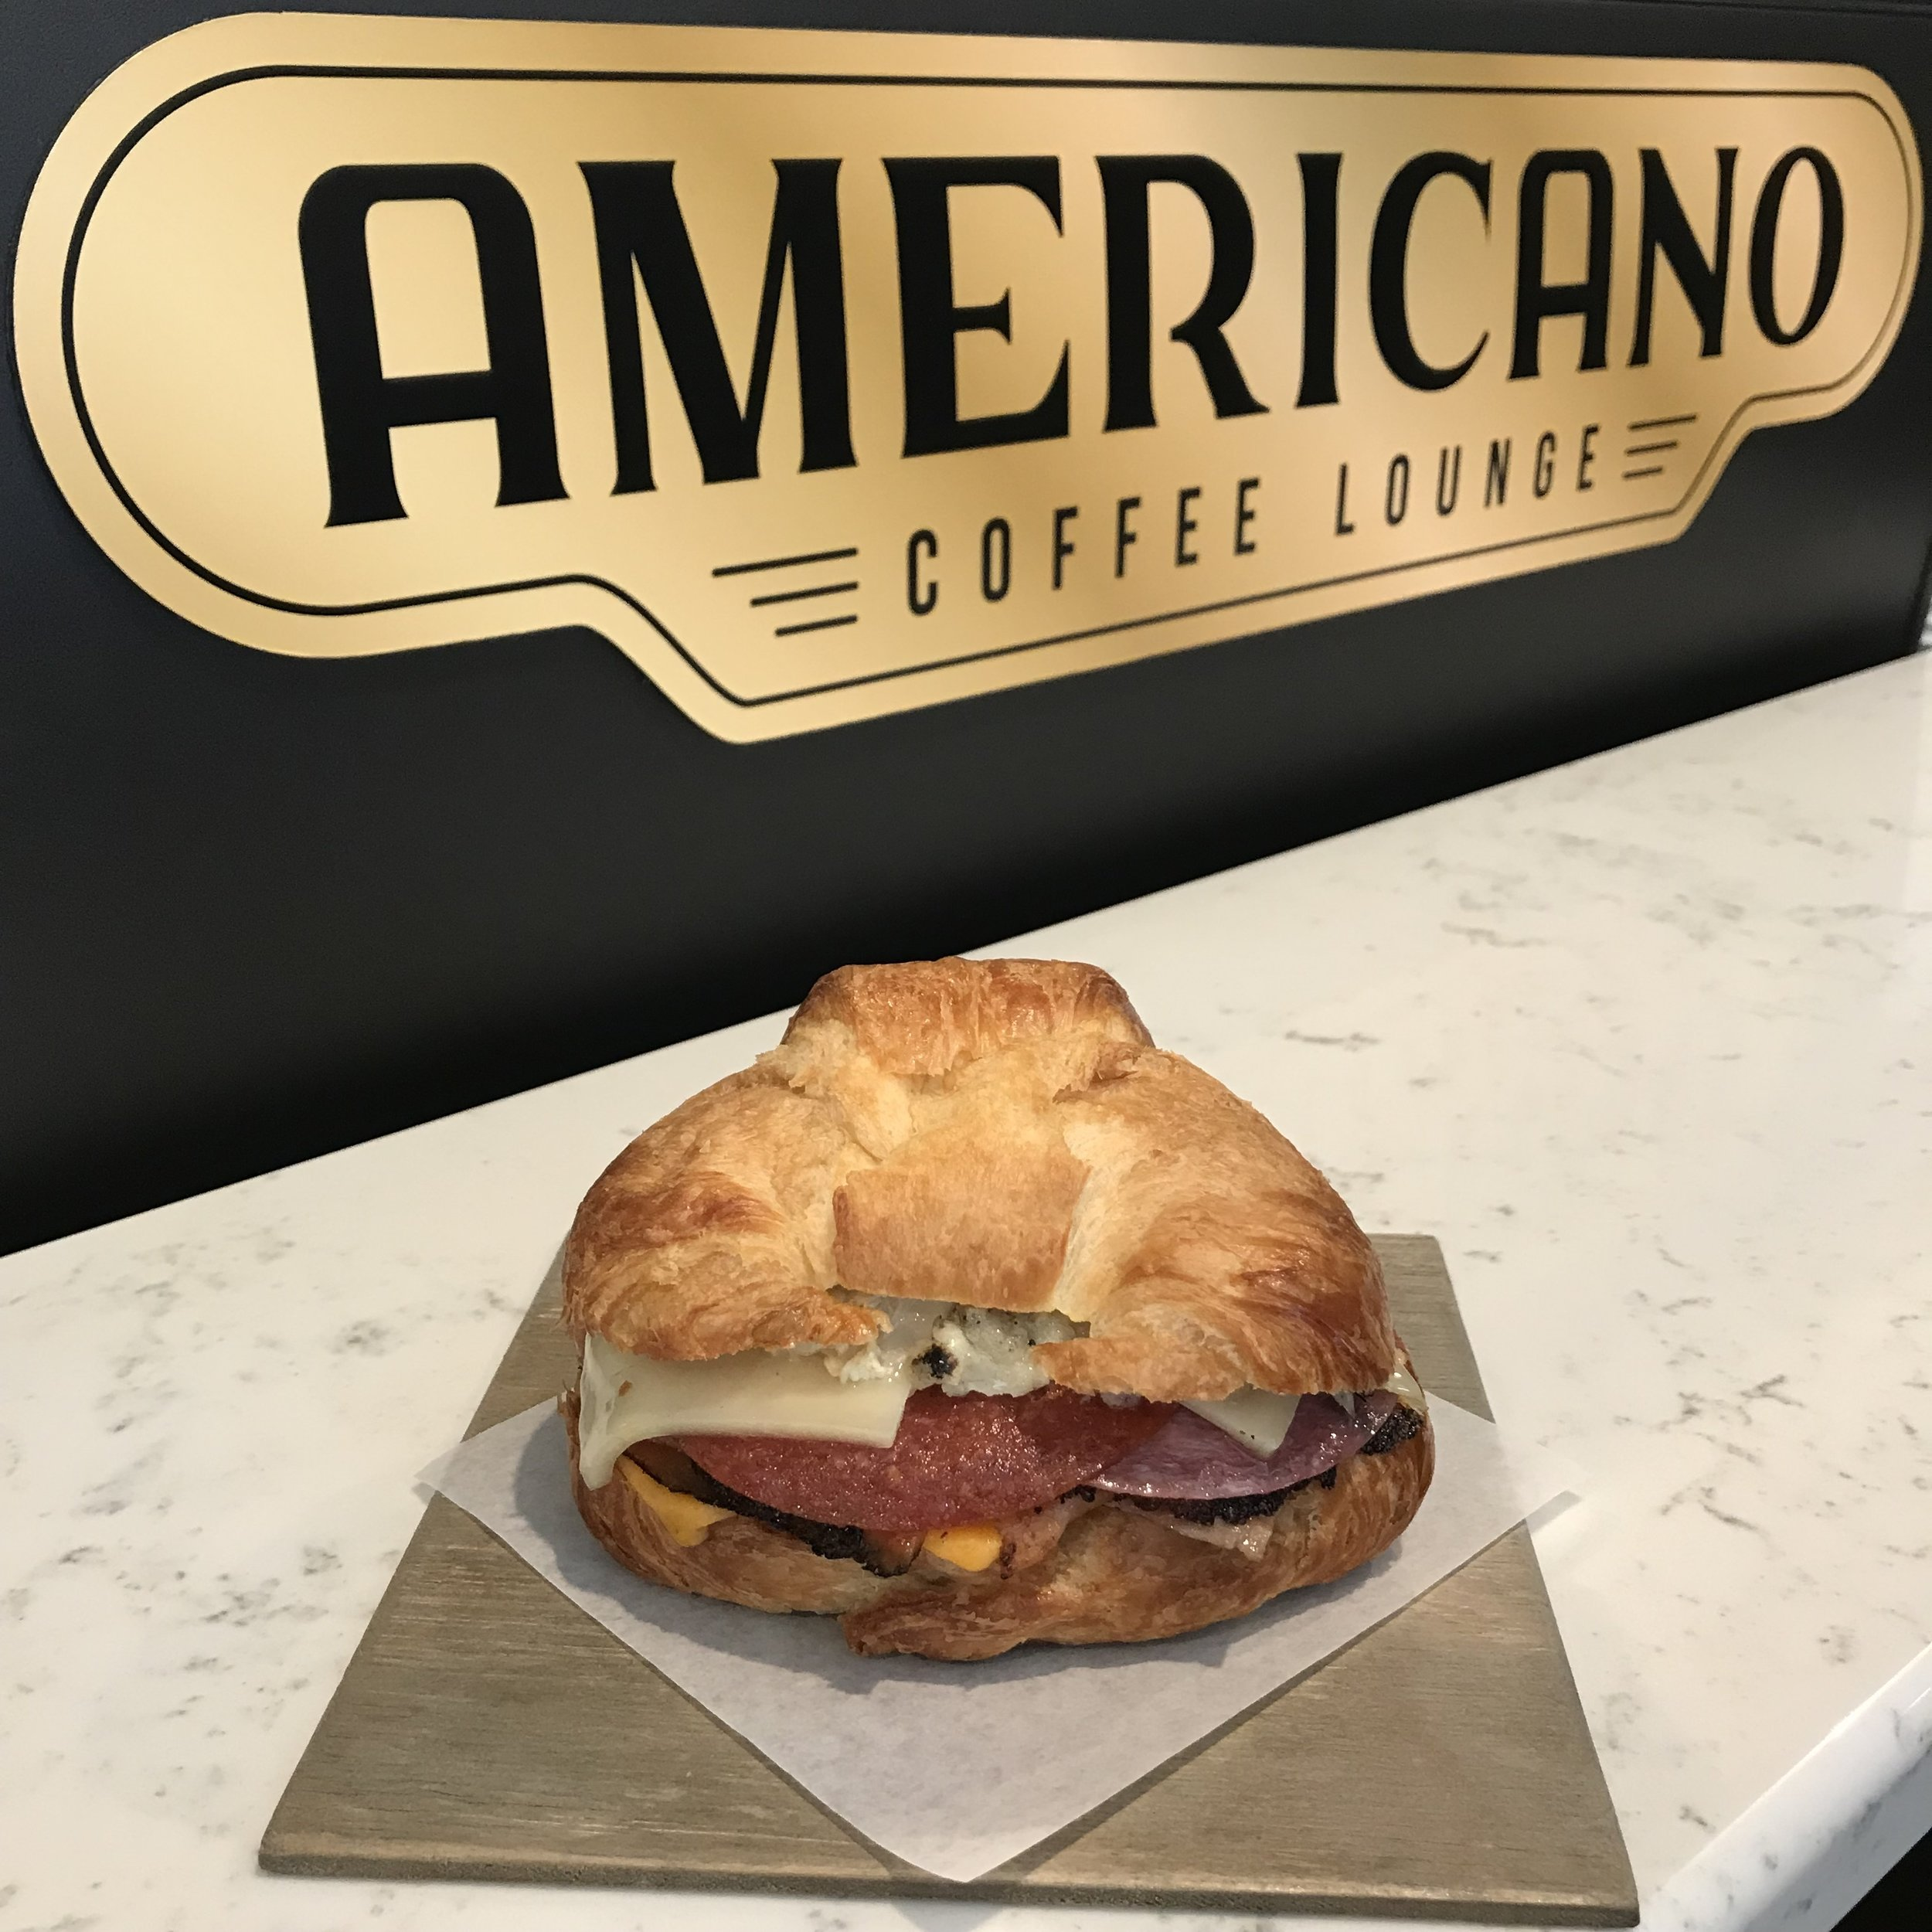 Croissant Sandwich in front of espresso machine at Americano Coffee Lounge 434 Houston Street Suite 120 Nashville Tennessee 37203